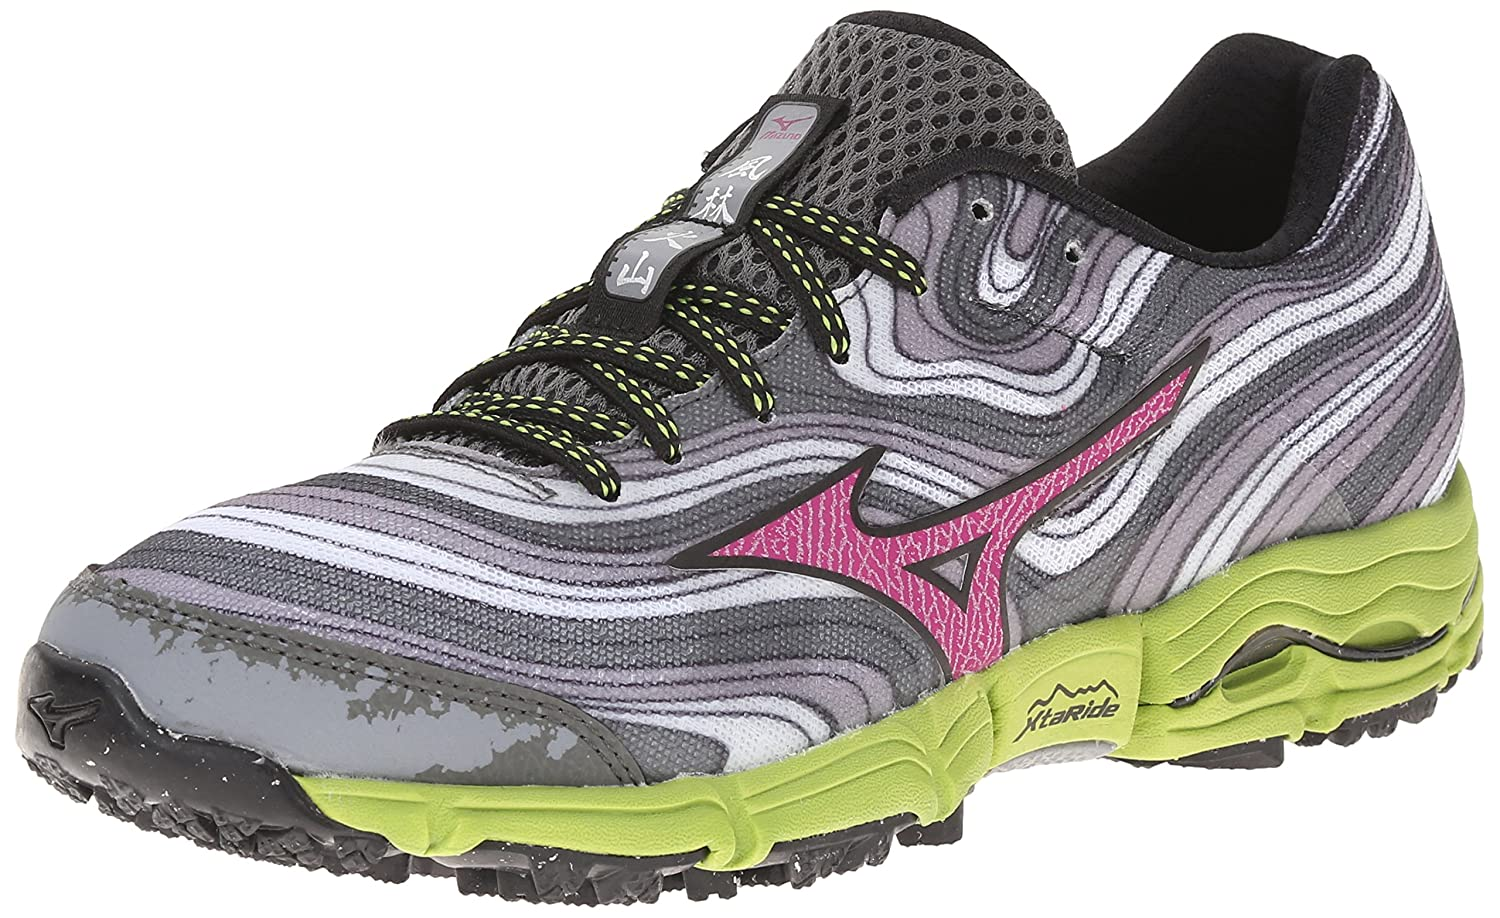 Mizuno Women's Wave Kazan Trail Running Shoe B00QW5JIPU 6.5 B(M) US|Alloy Wild Aster